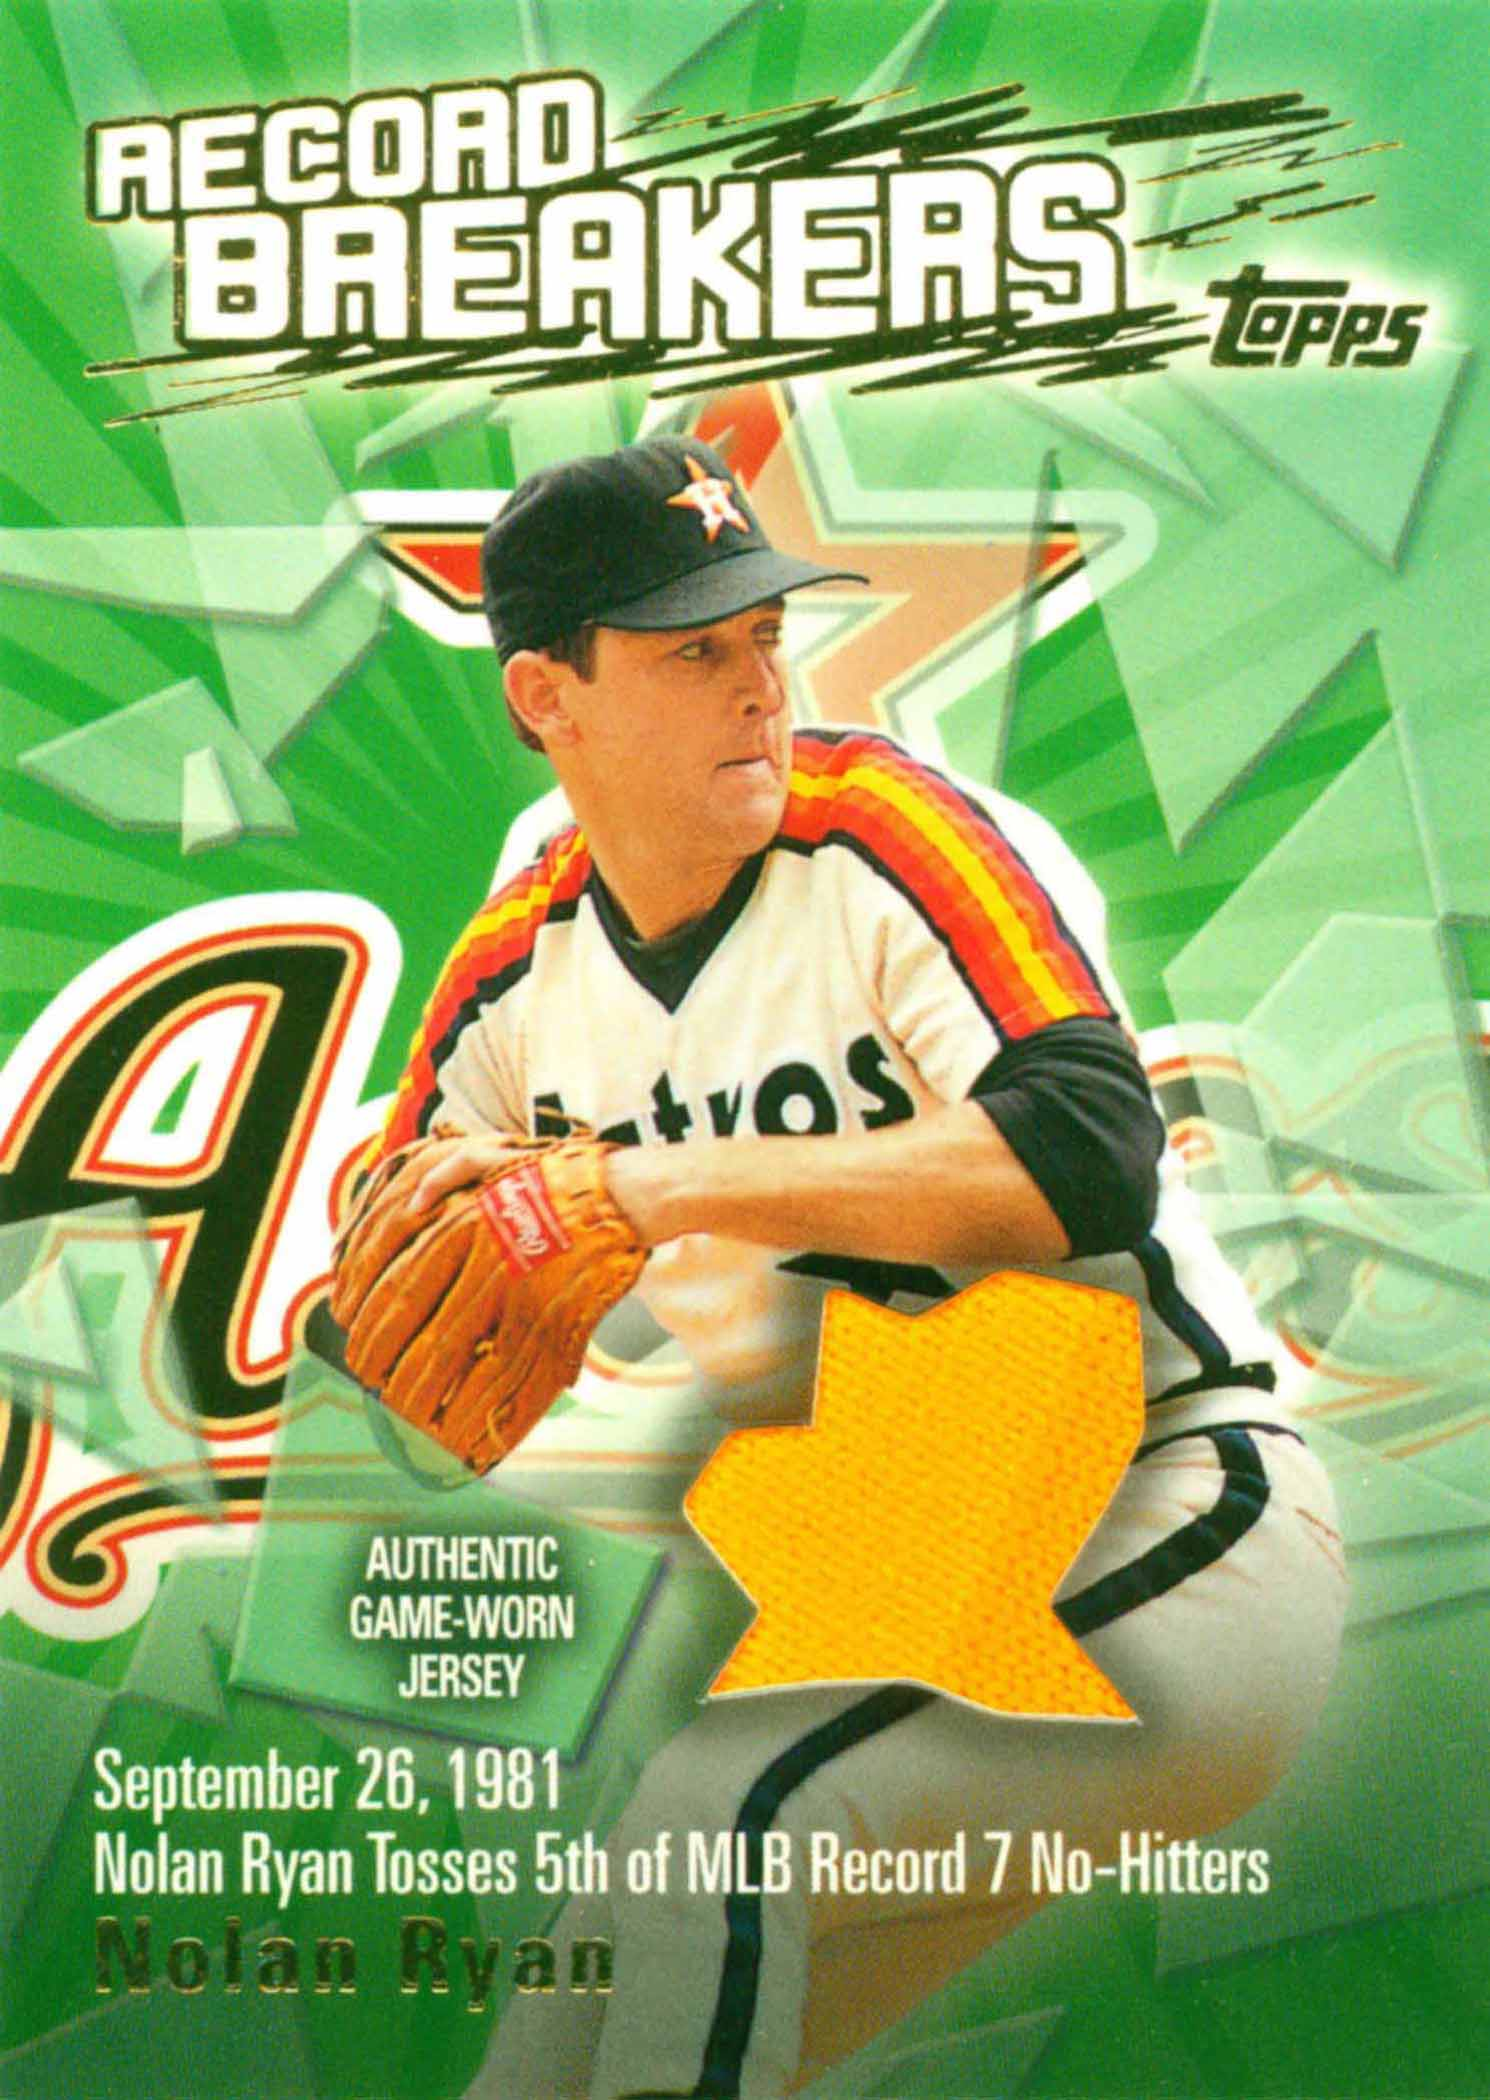 2003 Topps Record Breakers Relics Uniform